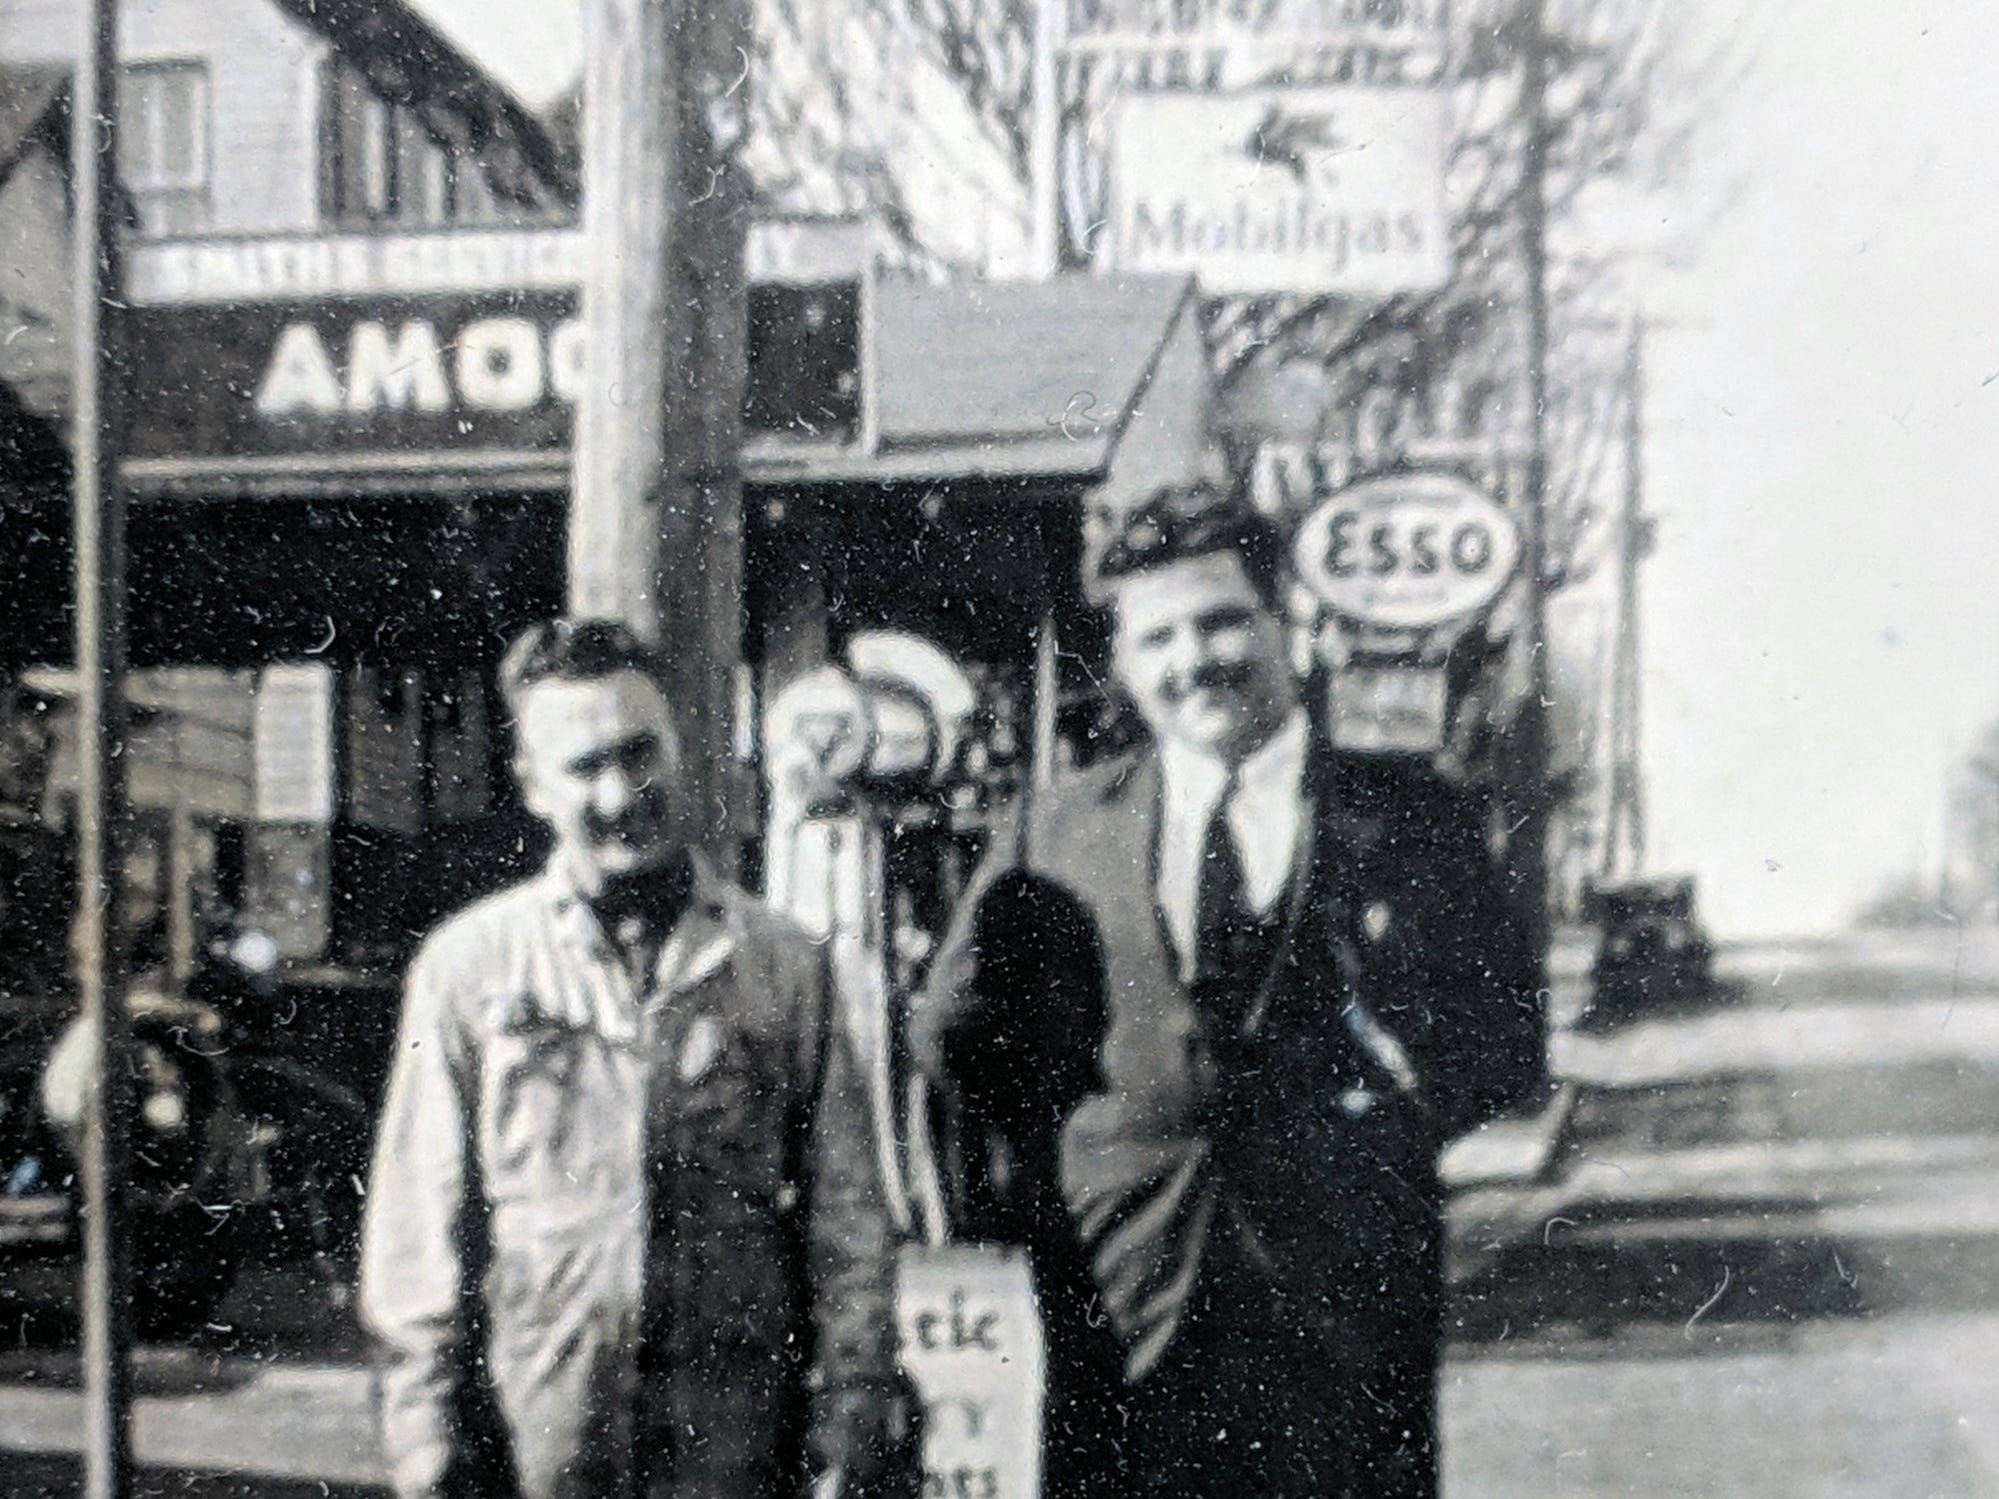 This is a view in front of Smith's store in Jacobus as it looked in 1933.